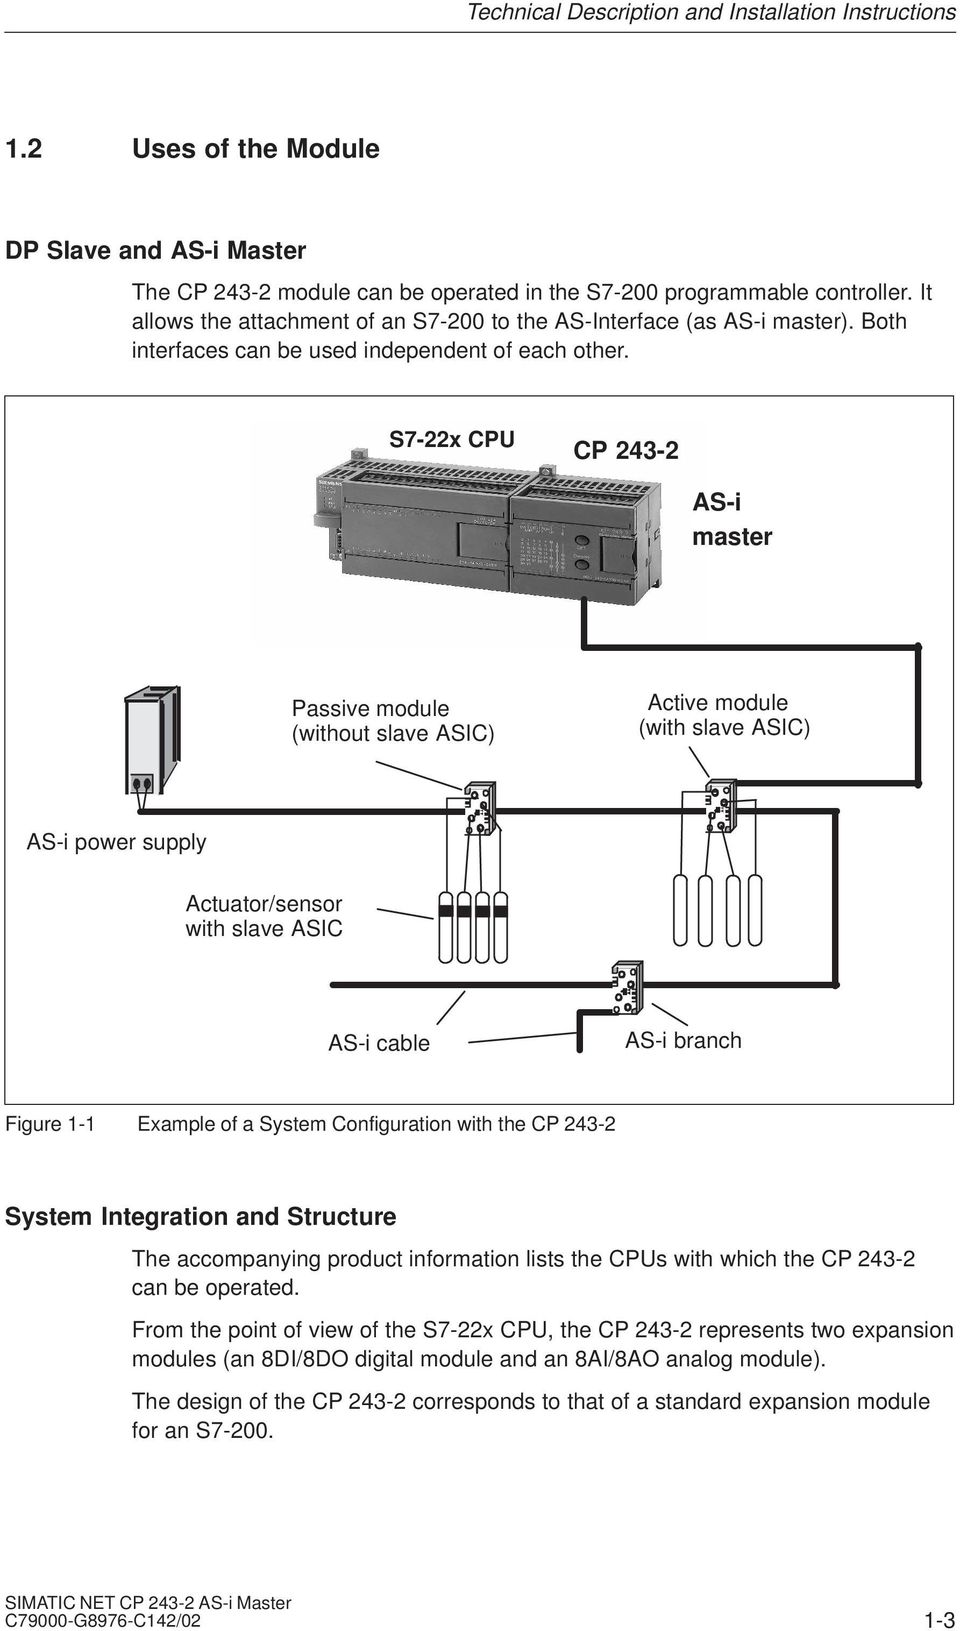 S7-22x CPU CP 243-2 AS-i master Passive module (without ASIC) Active module (with ASIC) AS-i power supply Actuator/sensor with ASIC AS-i cable AS-i branch Figure 1-1 Example of a System Configuration